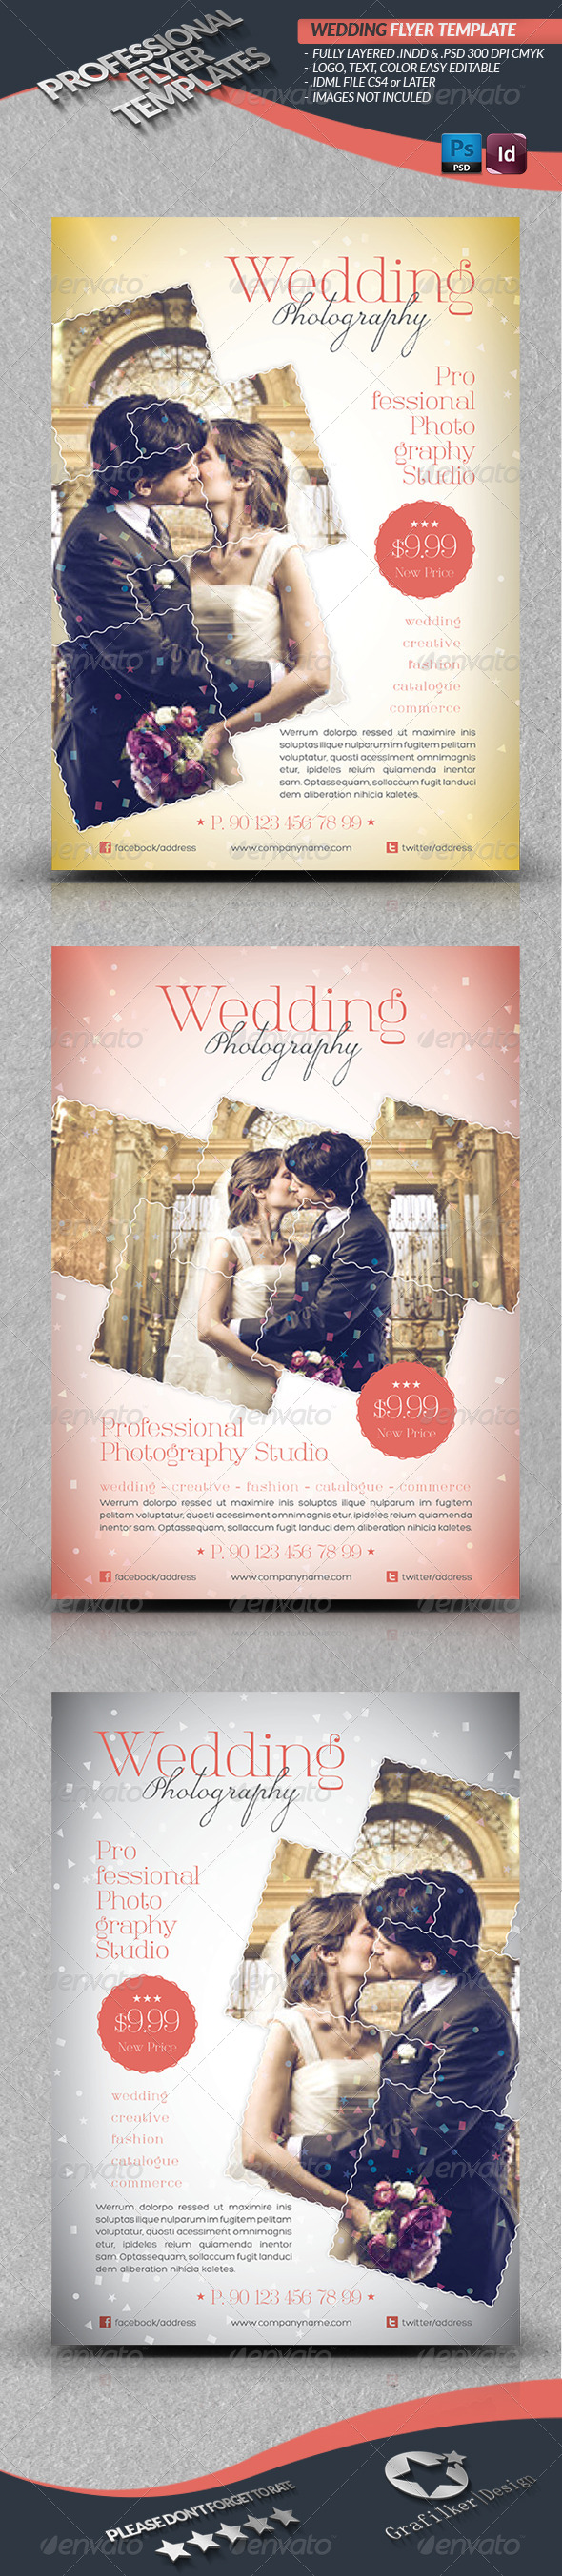 wedding photography flyer psd wedding photography website wedding photography flyer template corporate flyers